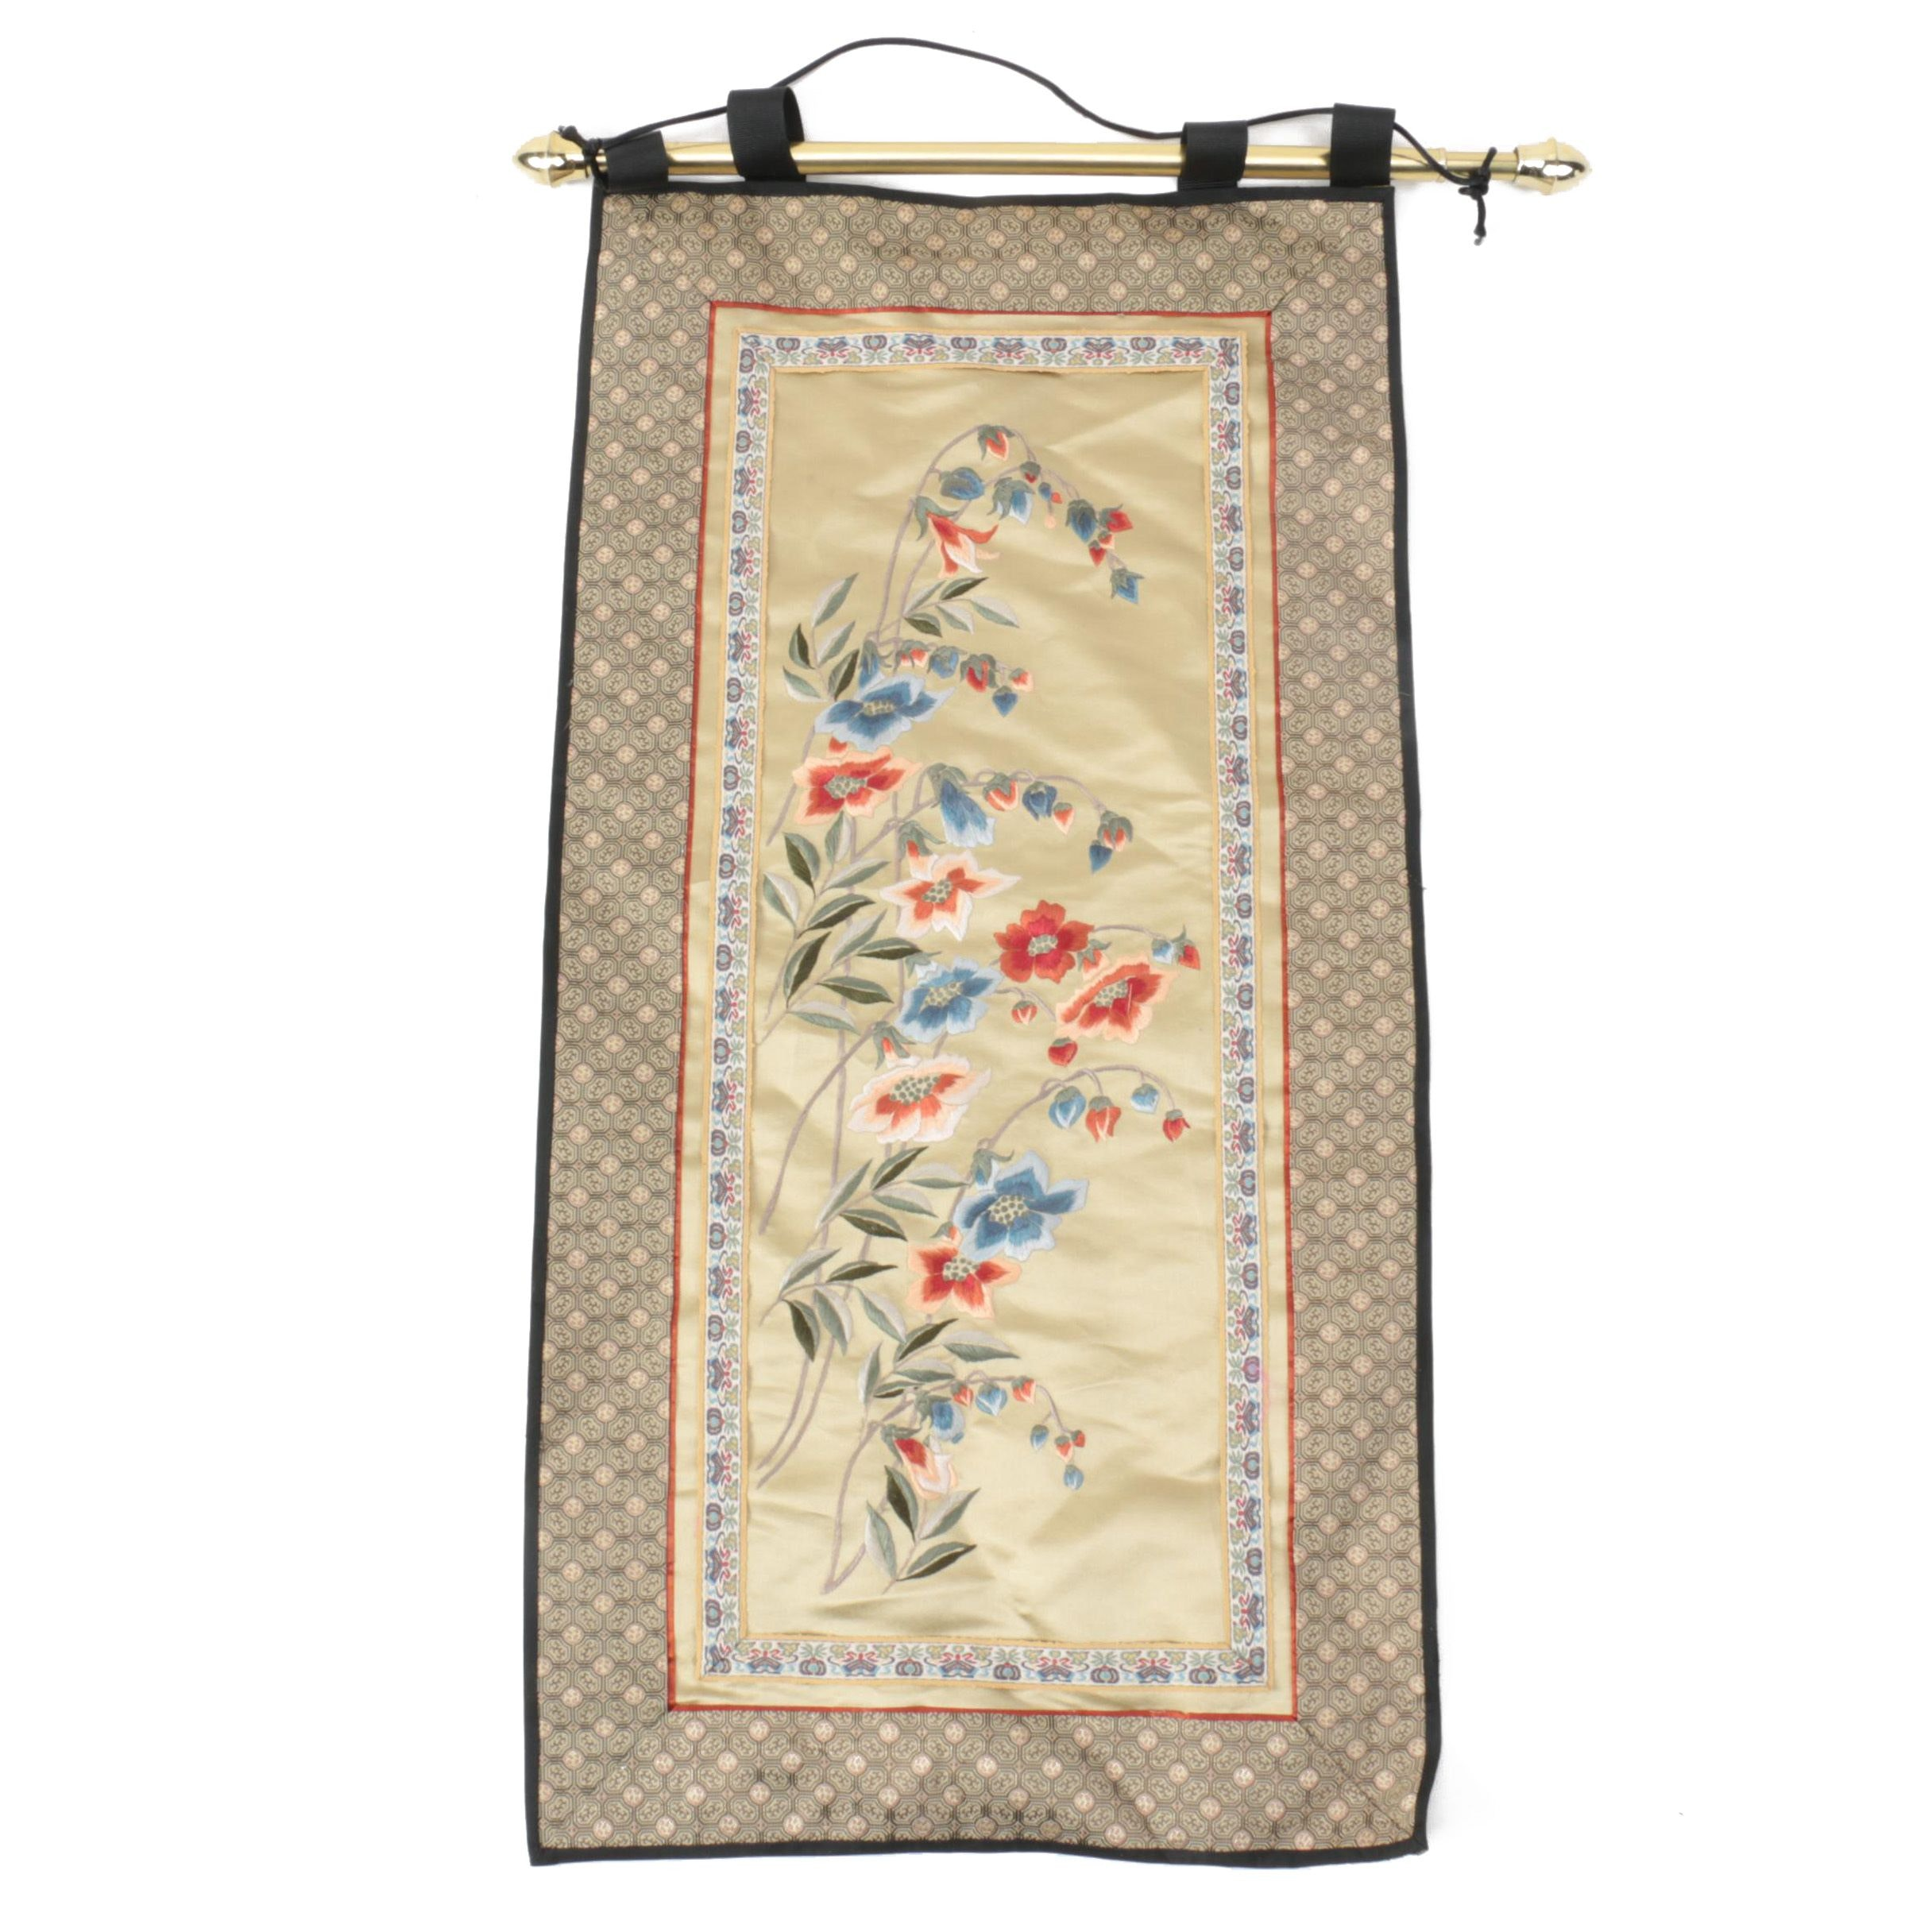 Chinese Silk Embroidery Wall Hanging